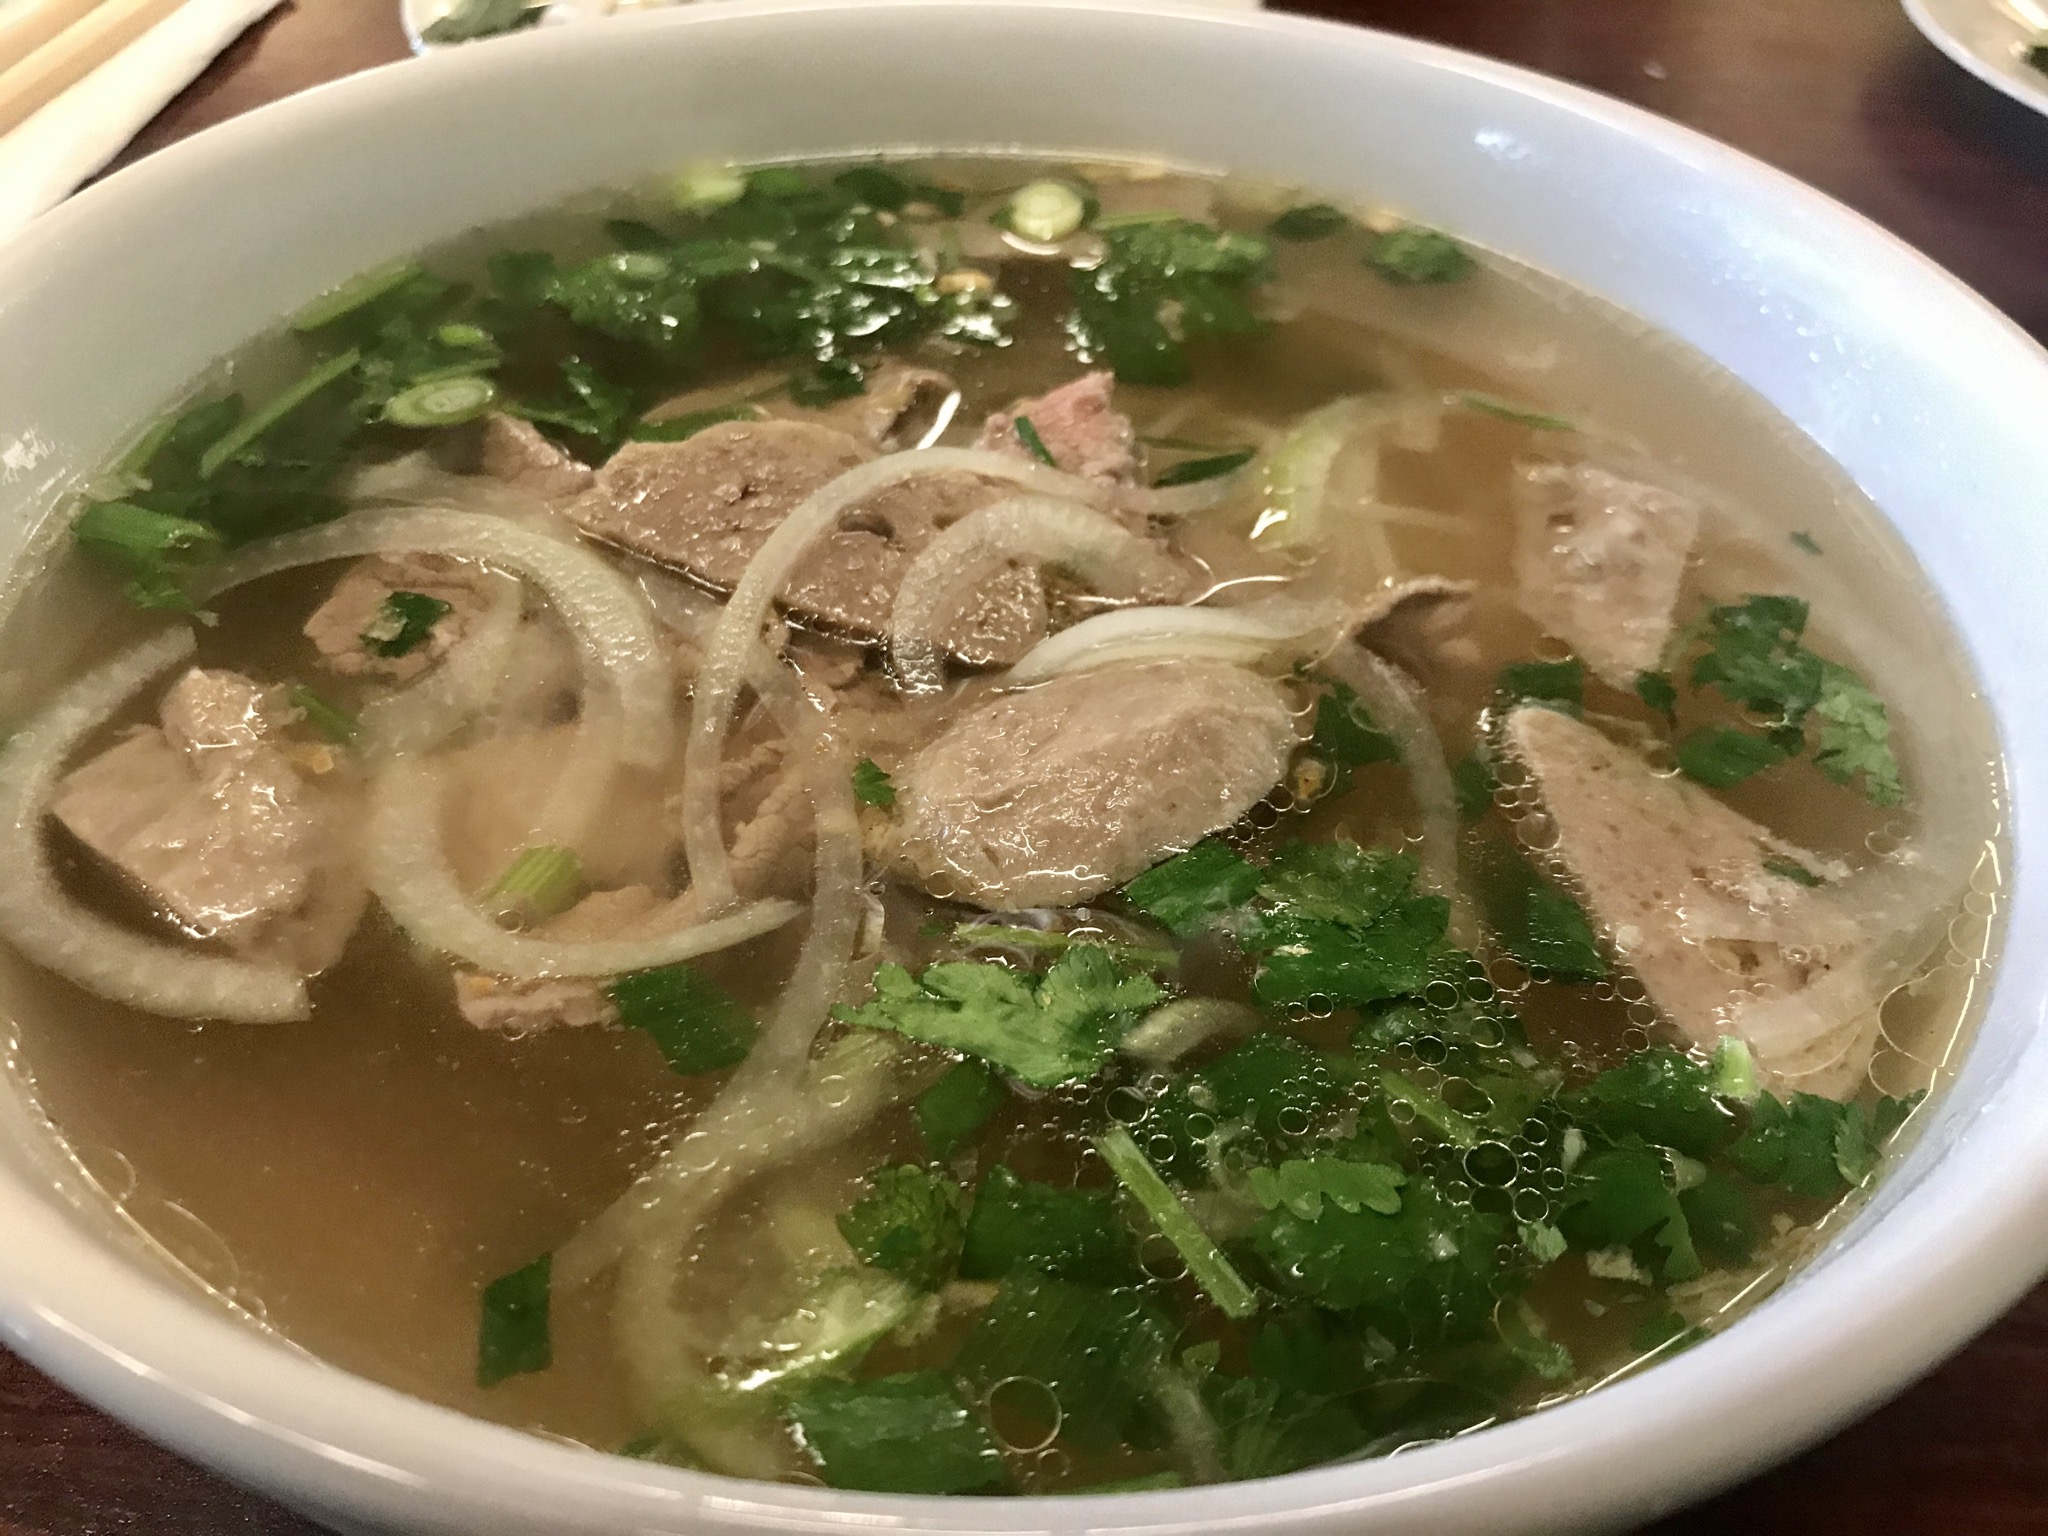 Lunch at Yummie Pho in Kennewick – December 27 2019